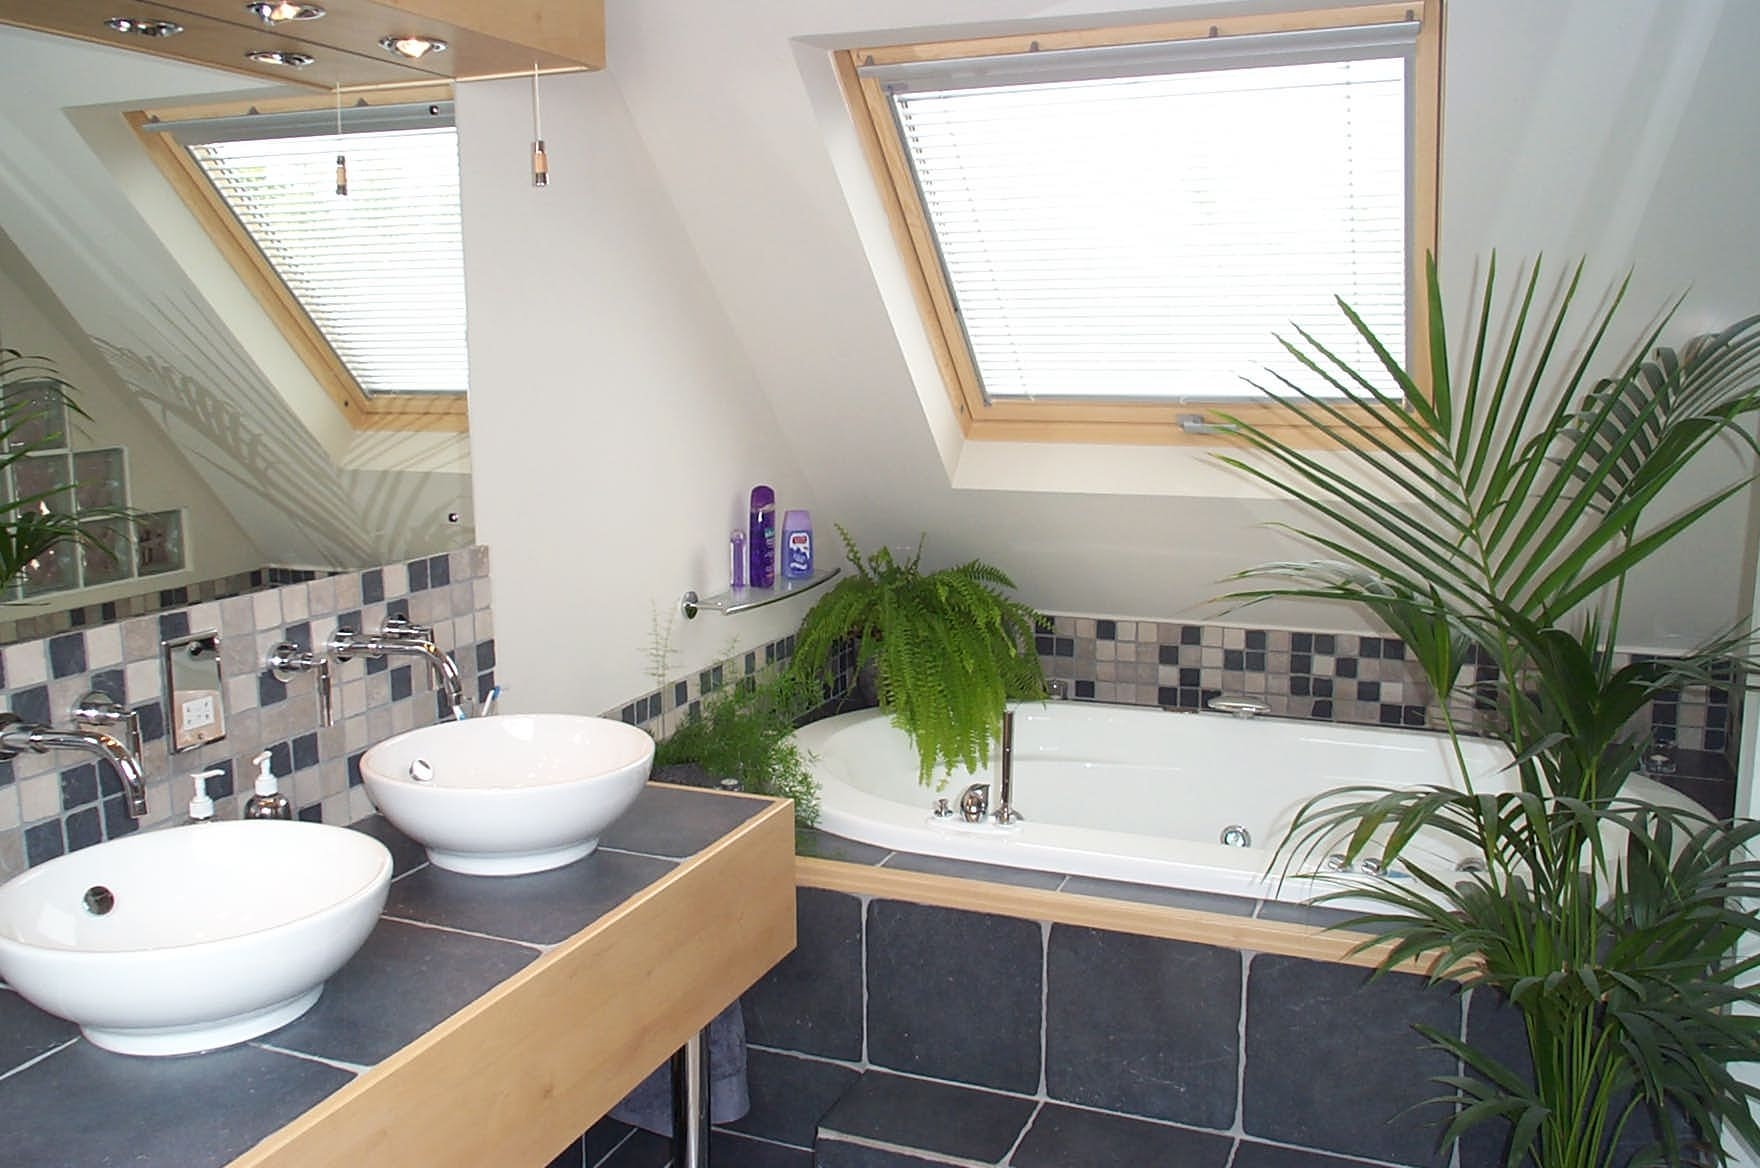 Loft Conversion Wikipedia 40+ Small Bathroom Loft Conversion Ideas